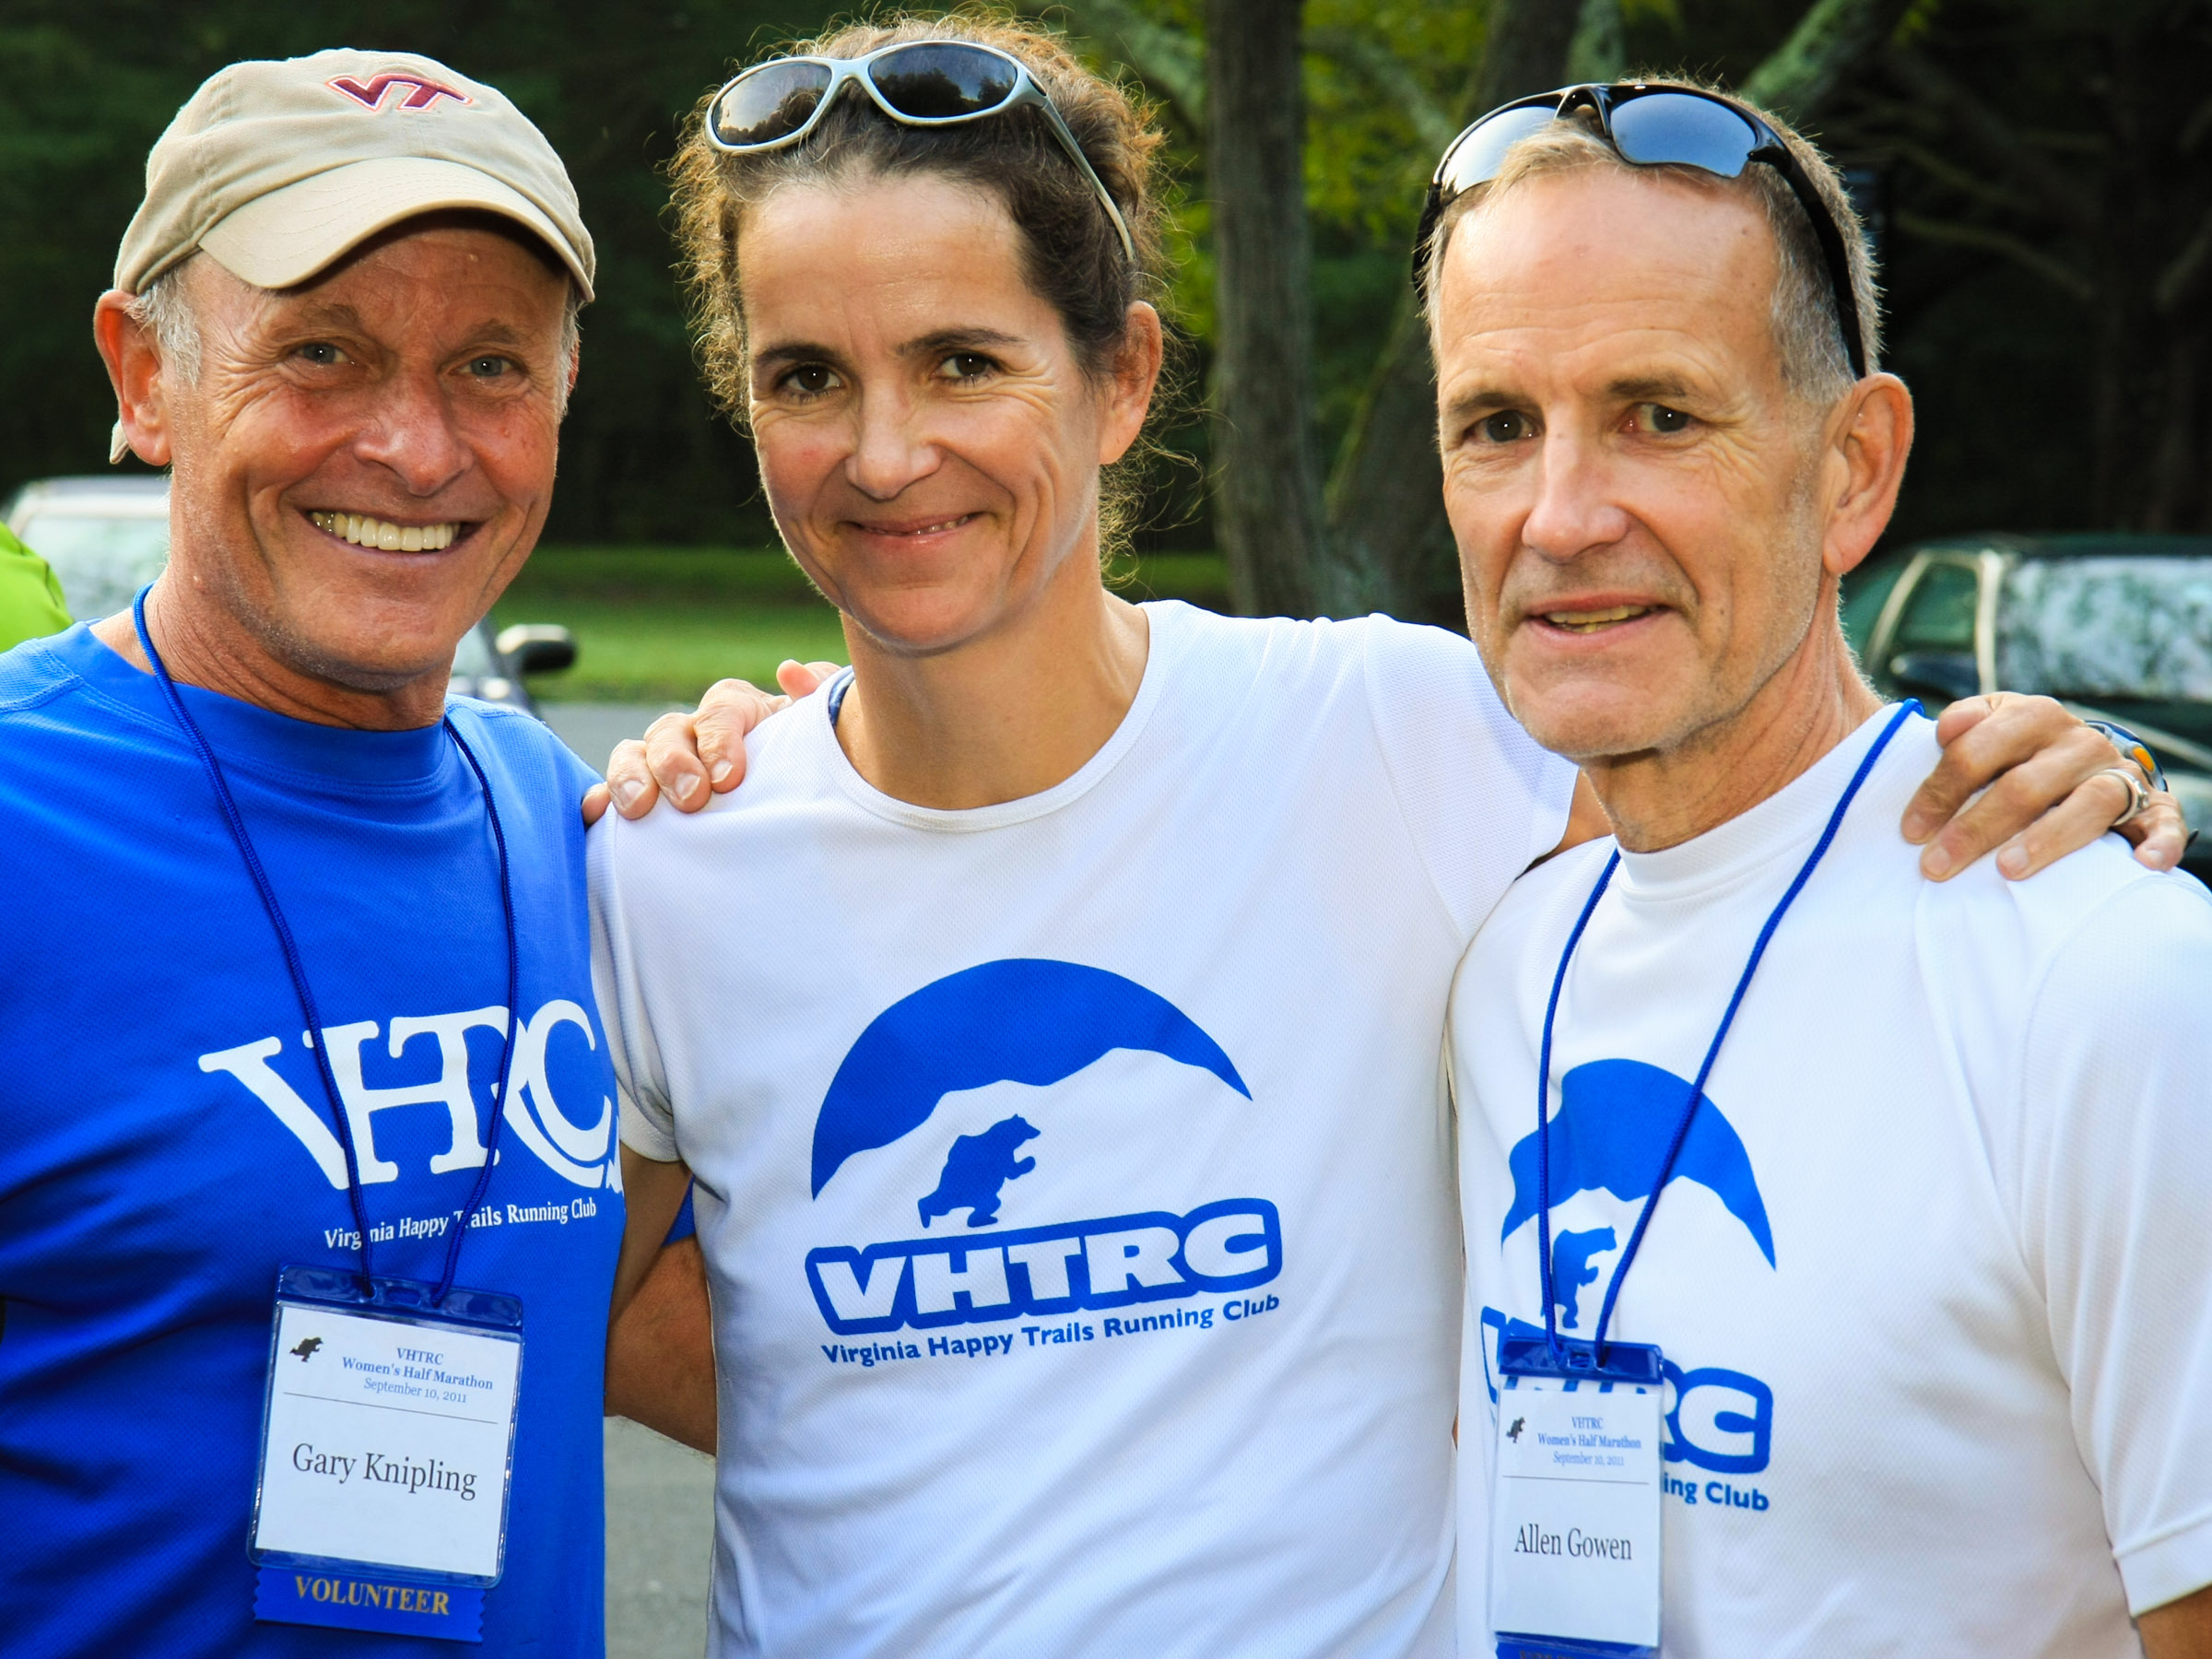 Gary Knipling, Sophie Speidel, and Alan Gowen: Volunteers from the 2011 event